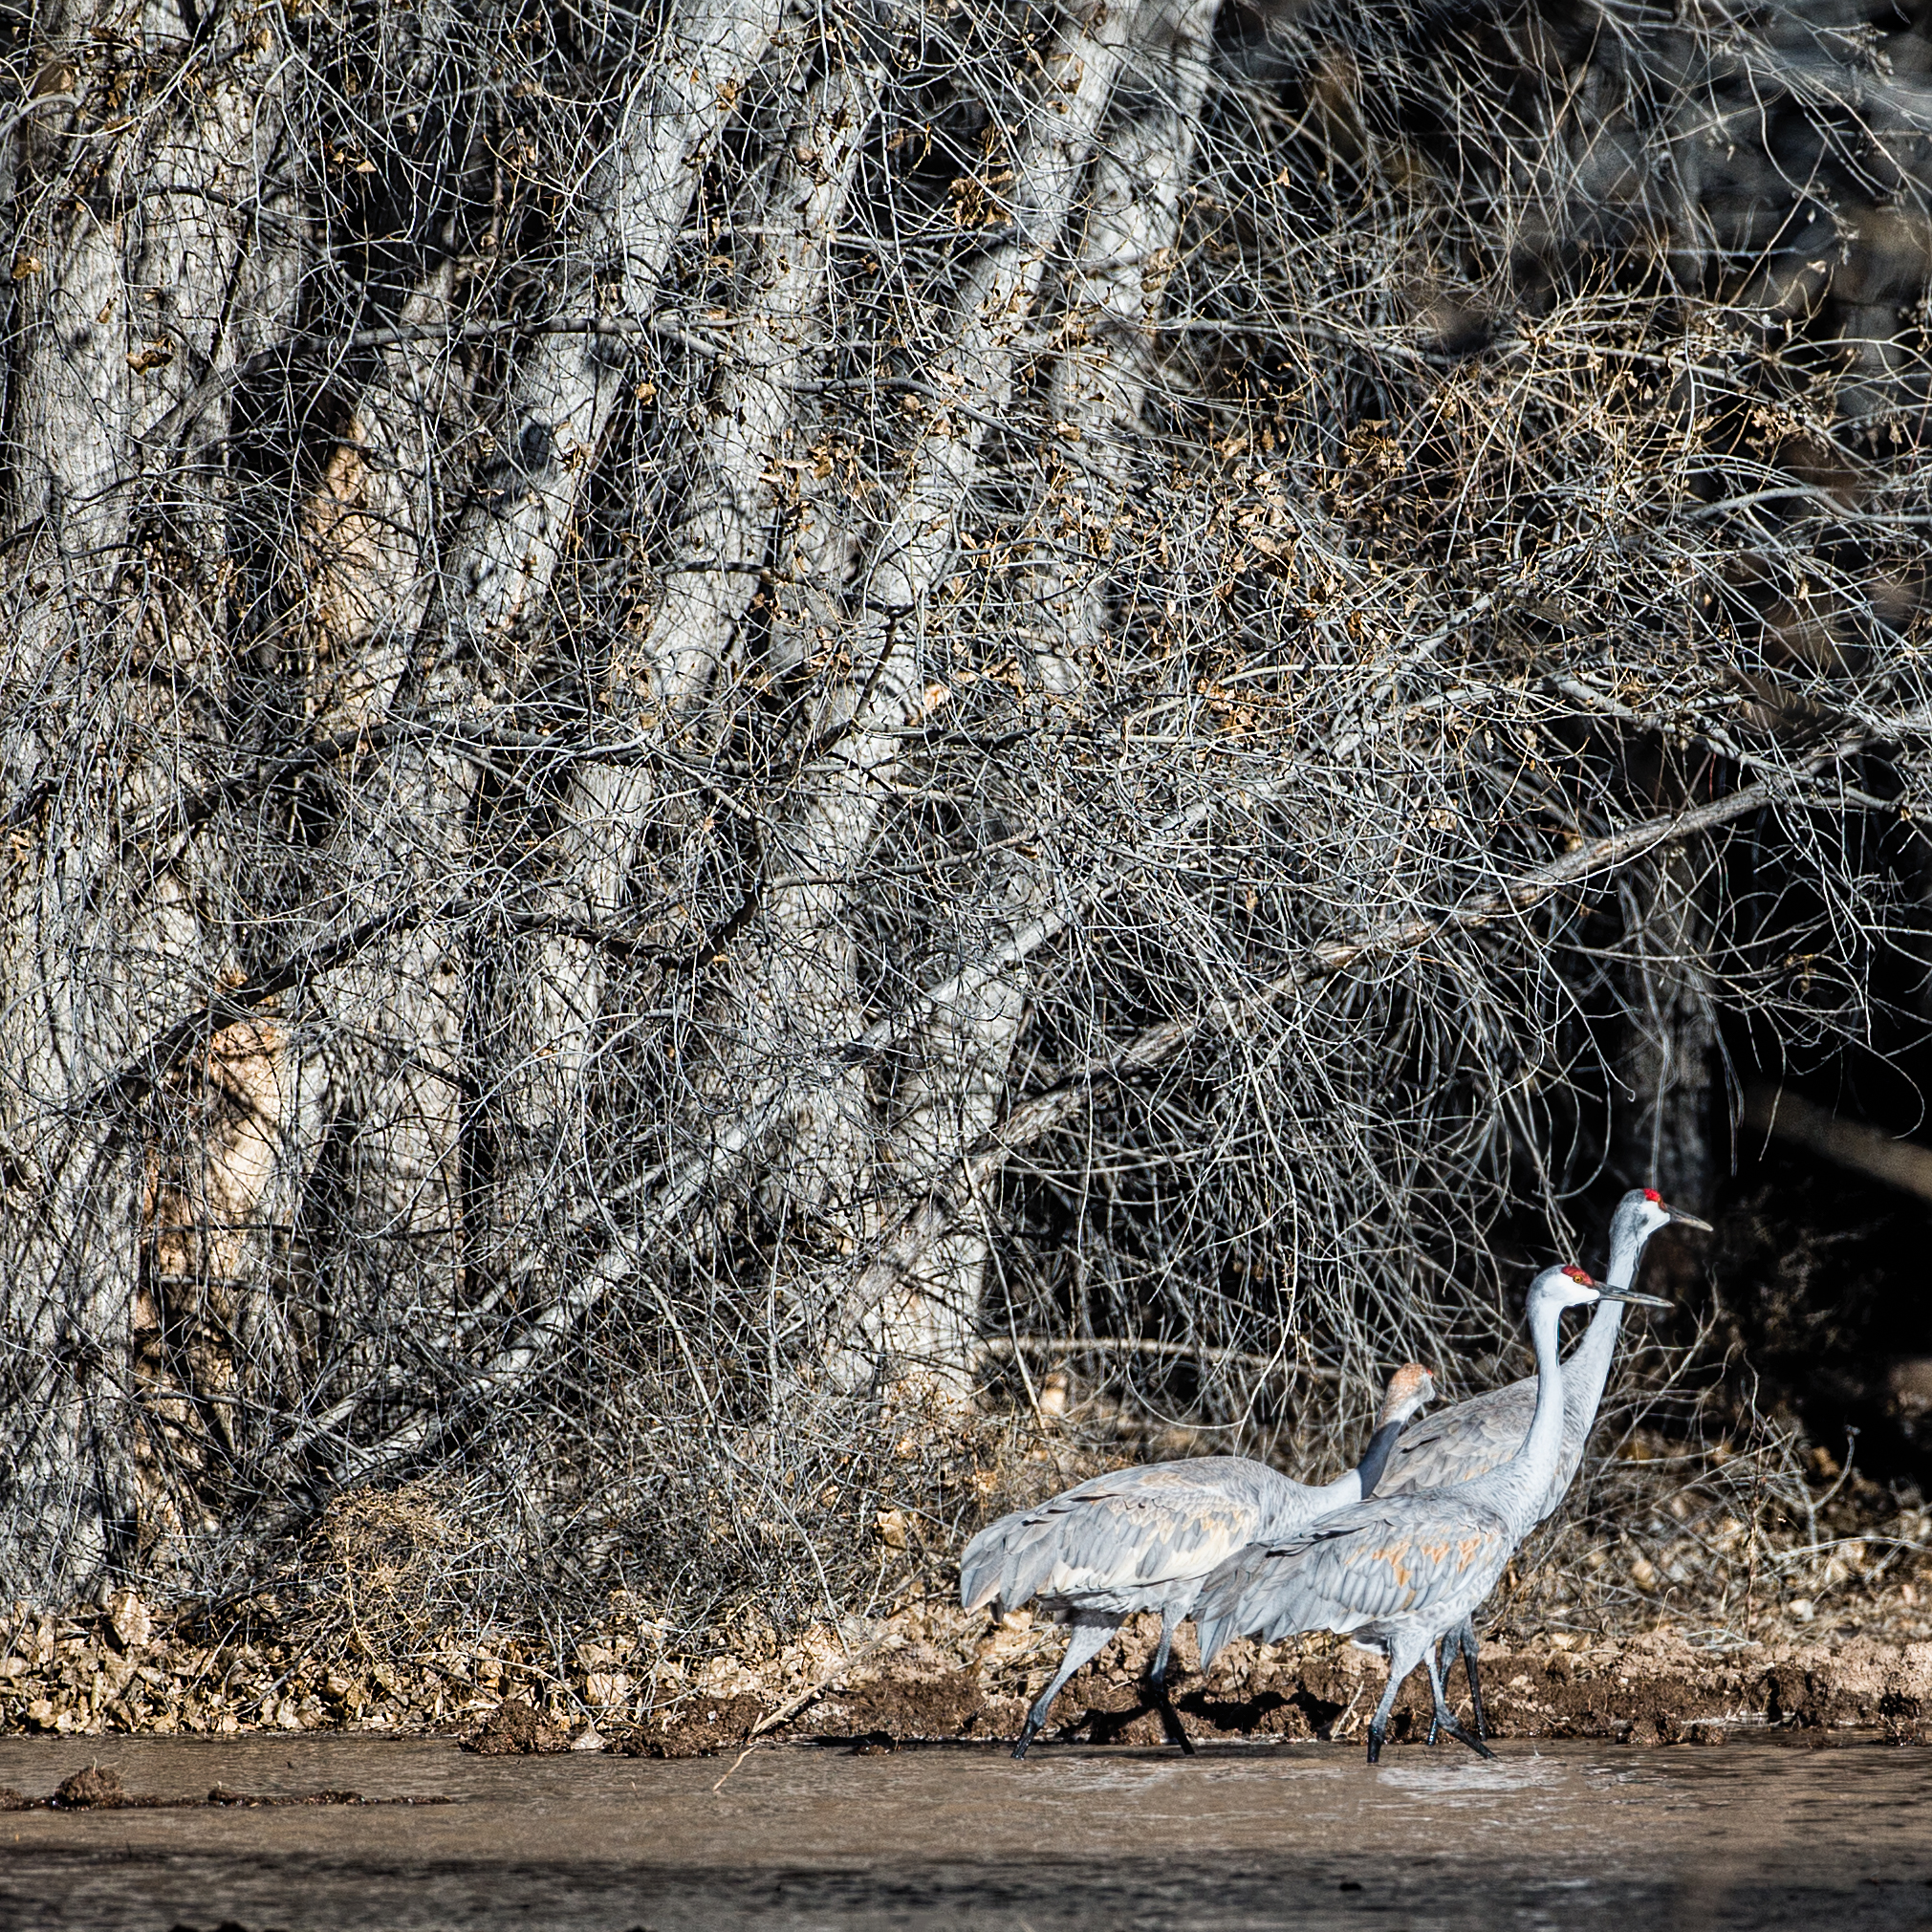 Sandhill cranes (Grus canadensis) at the Bosque del Apache.